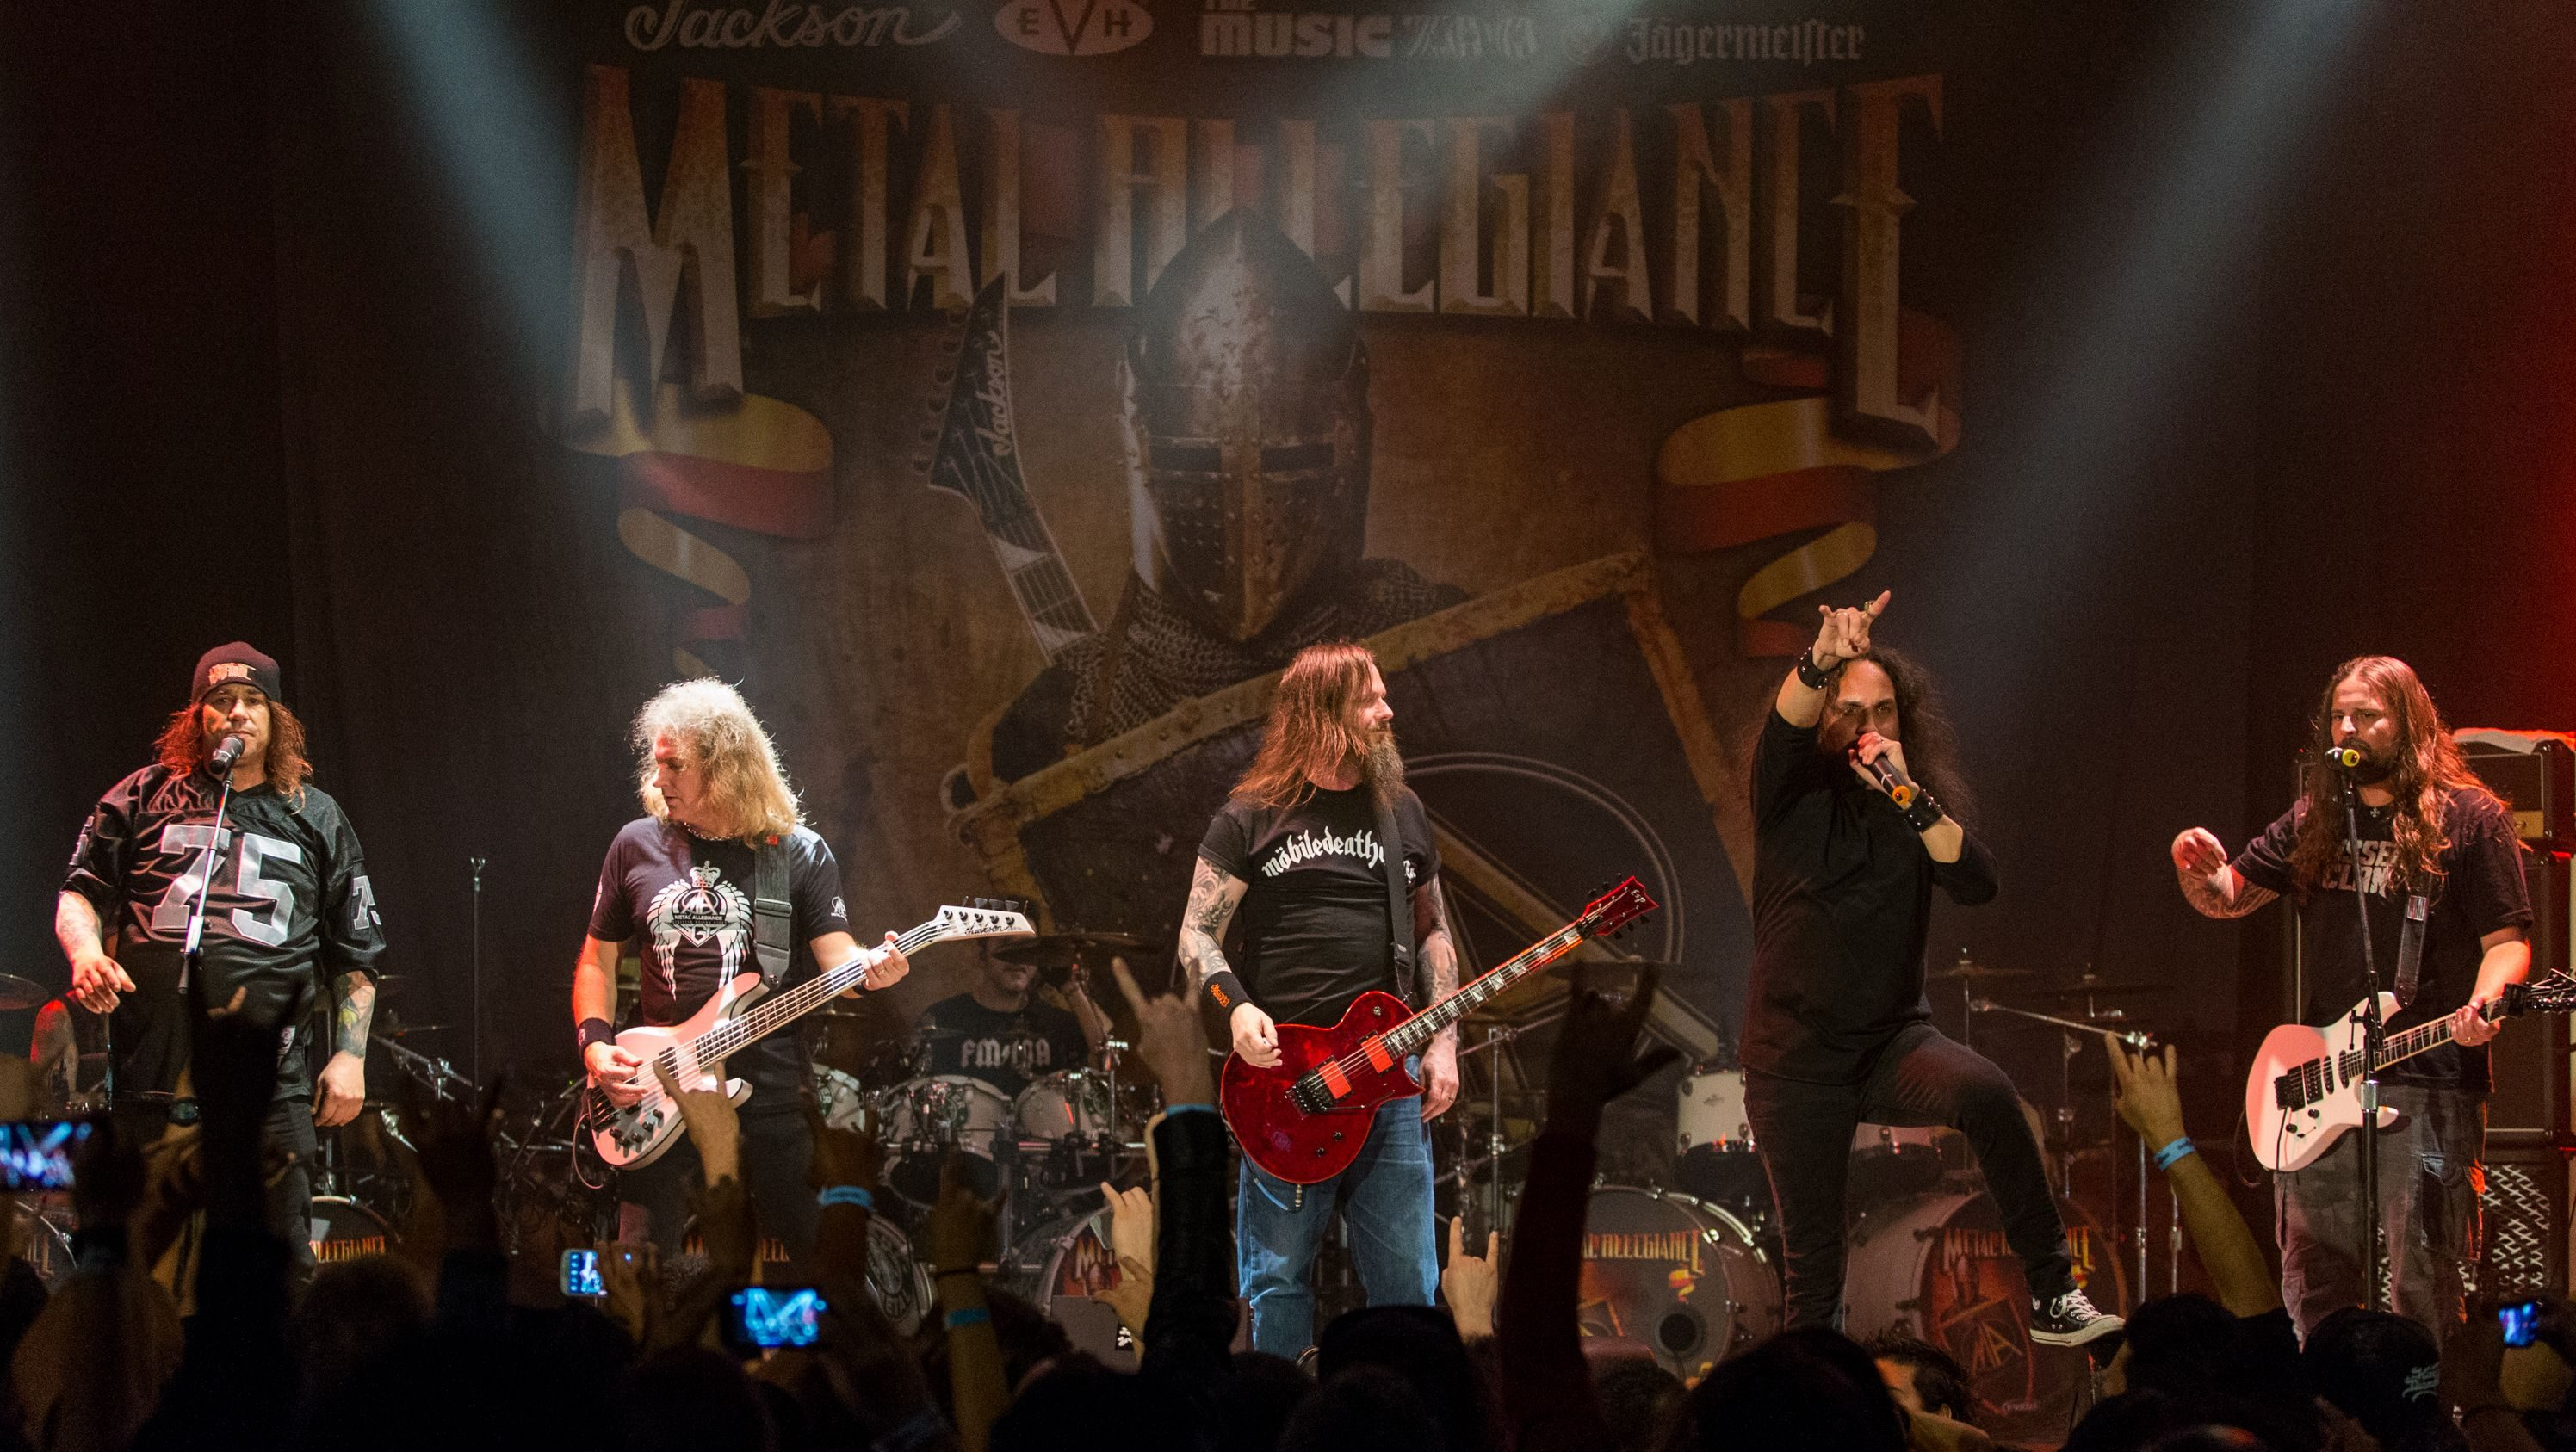 From left Steve Souza, of Exodus, David Ellefson, of Megadeth, Gary Holt, of Exodus, Mark Osegueda, of Death Angel, and Andreas Kisser, of Sepultura, perform on stage during the Metal Allegiance concert at the House of Blues on Wednesday, Jan. 21, 2015, in Anaheim, Calif. (Photo by Paul A. Hebert/Invision/AP)